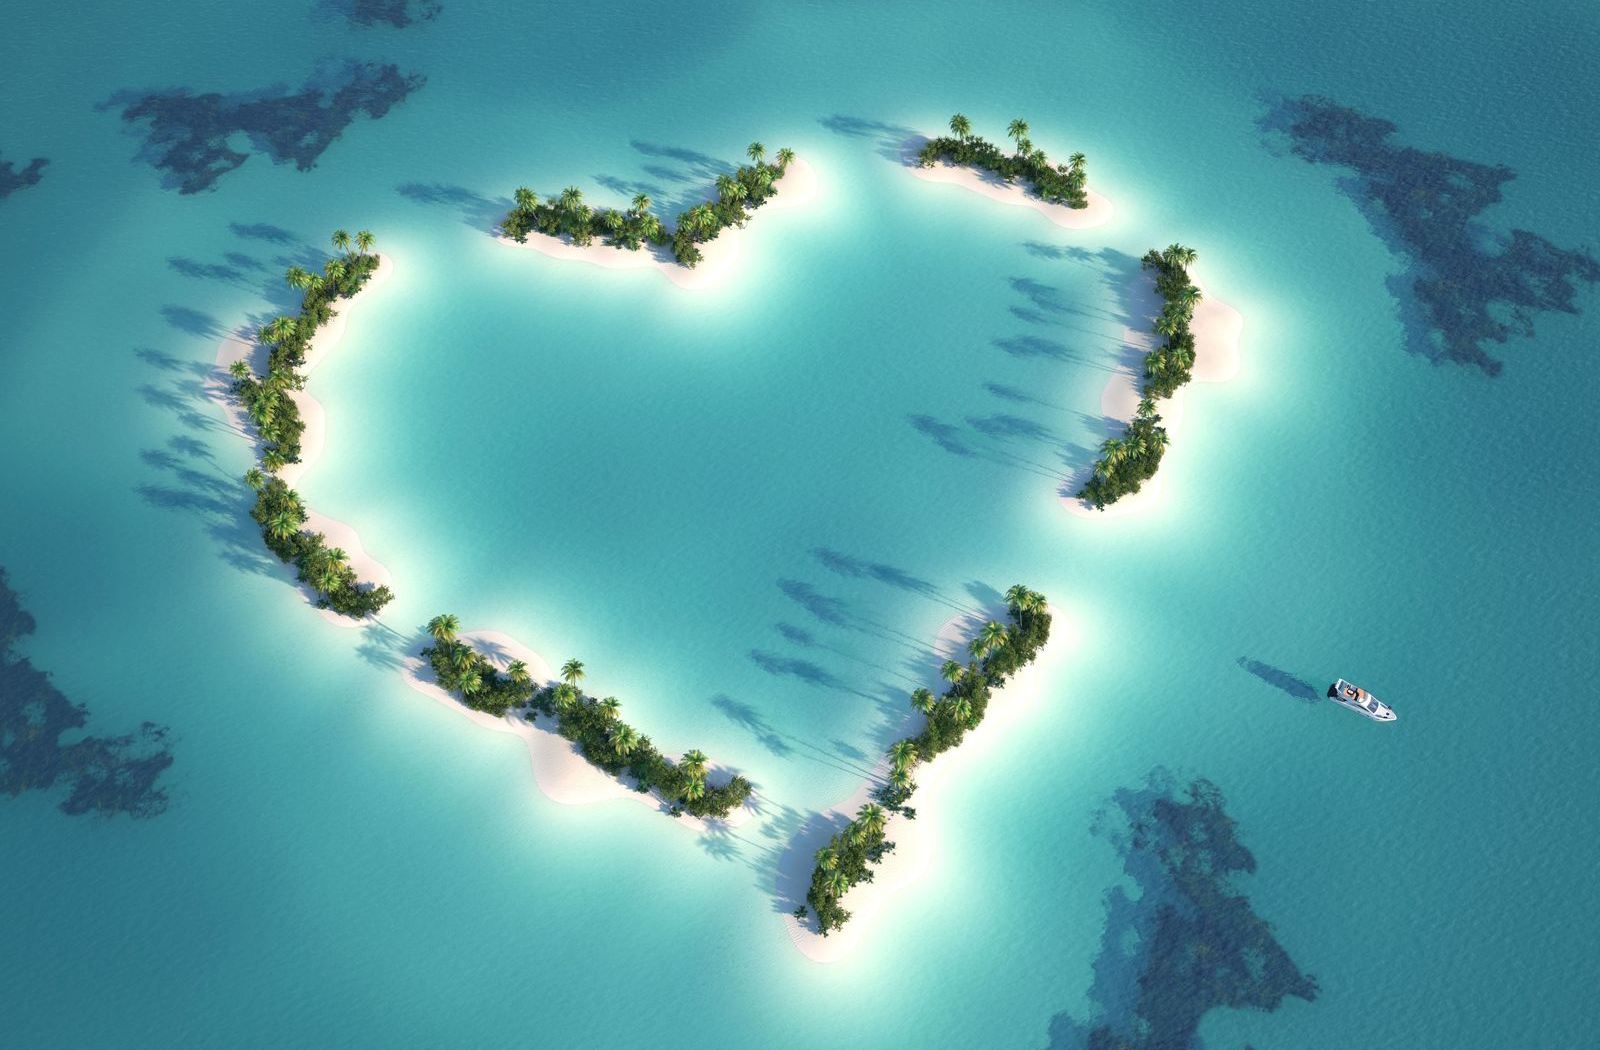 ocean wallpaper beautiful heart